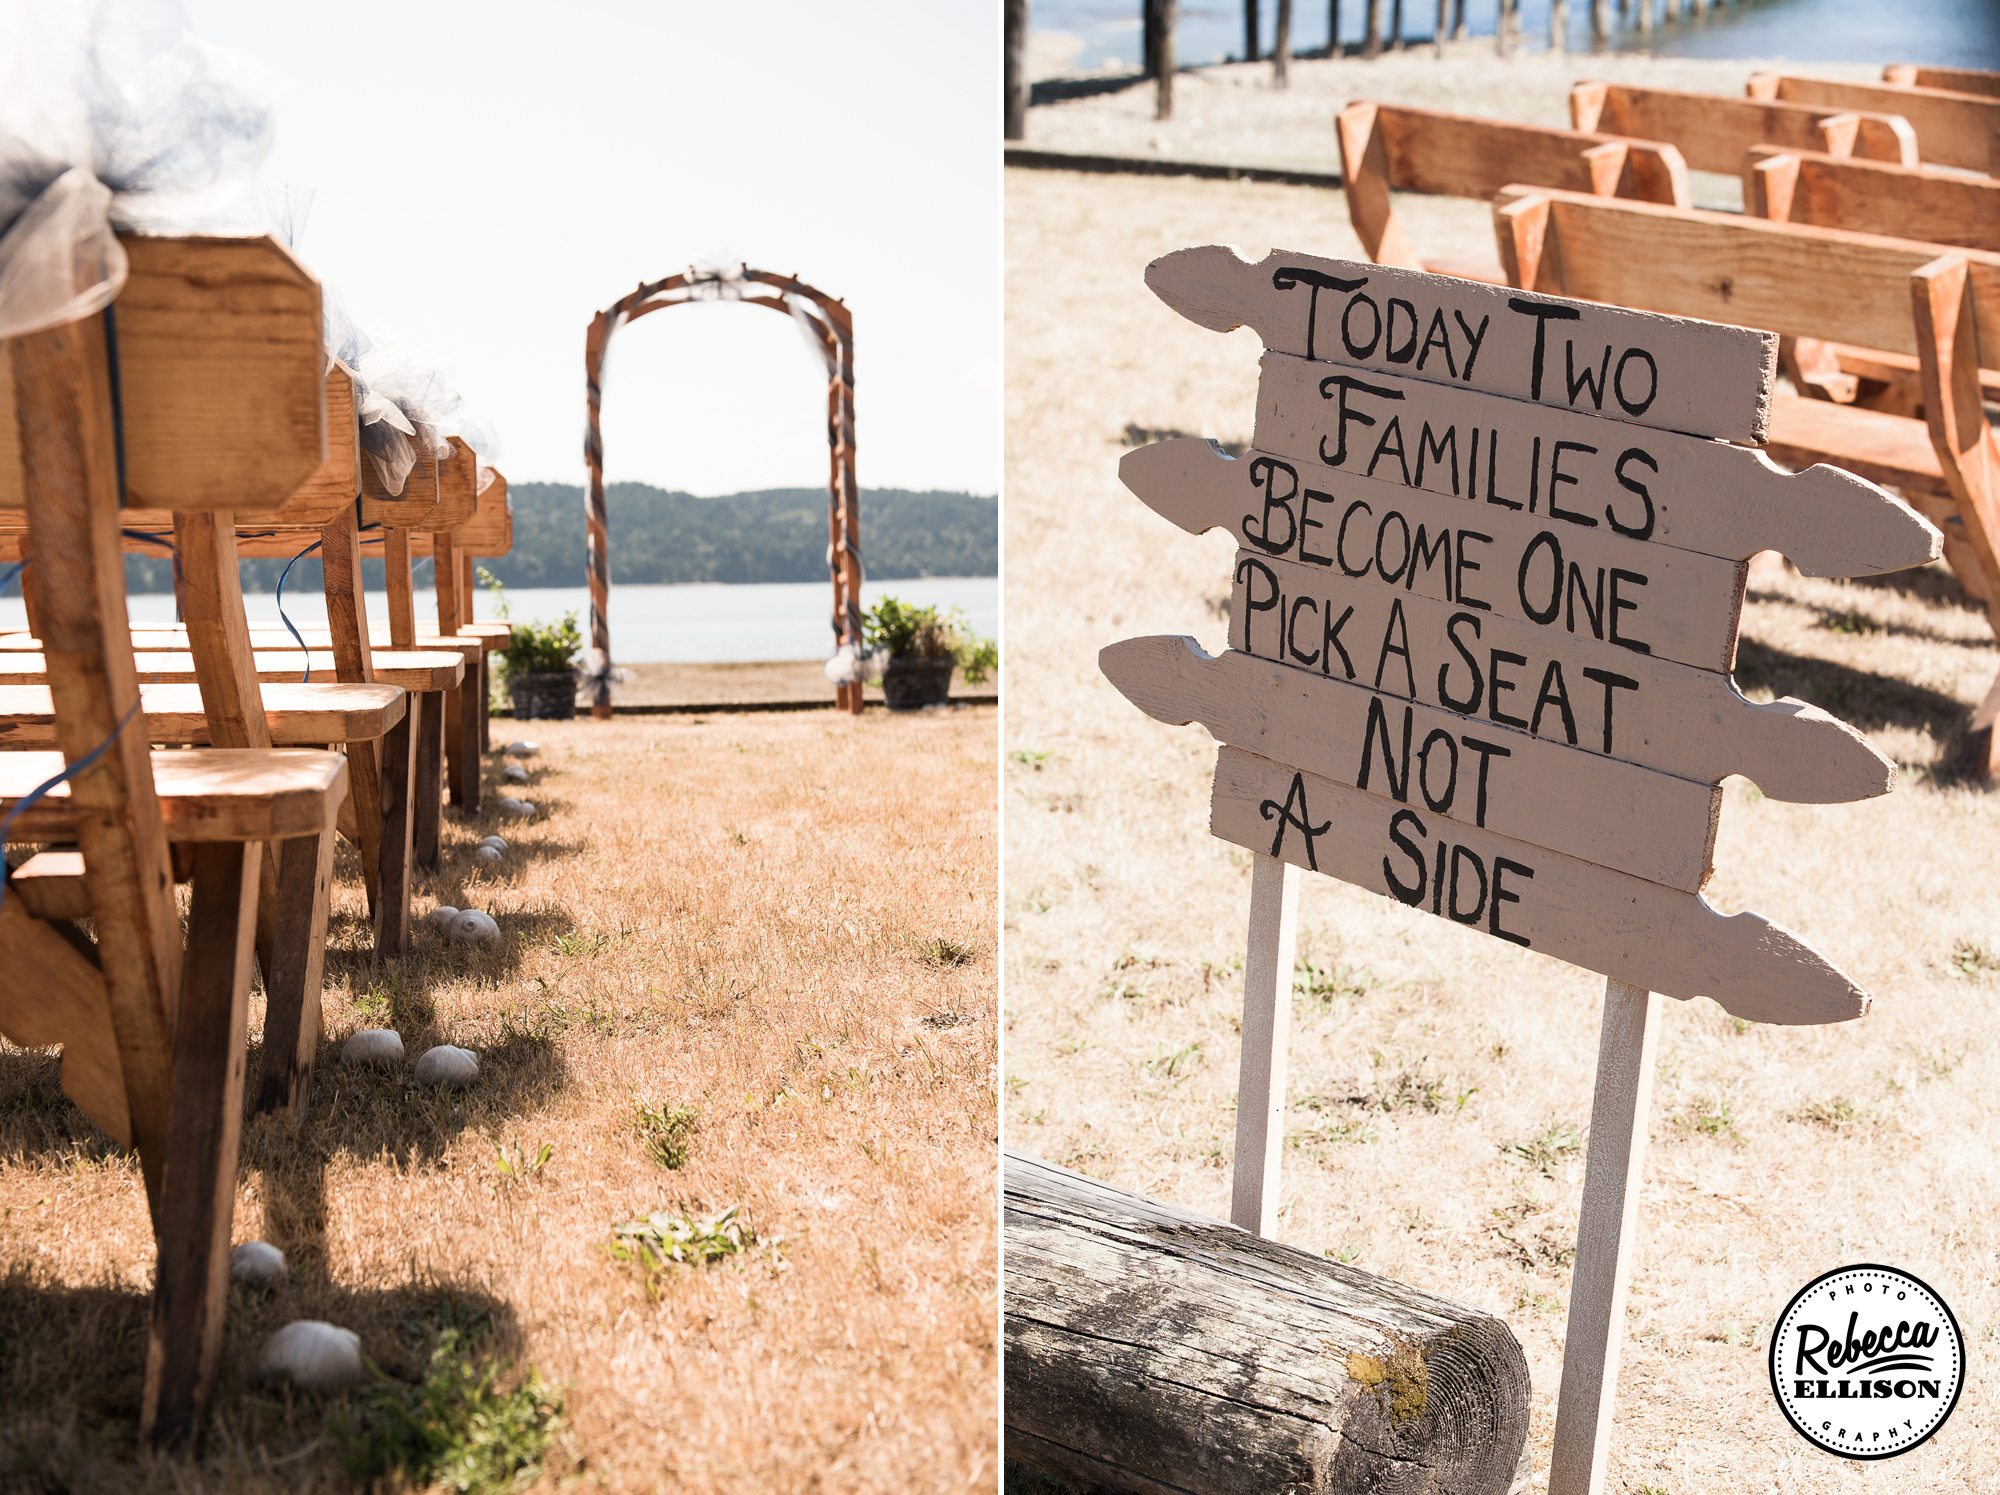 Beachfront wedding details featuring wooden benches in the sand and driftwood signs photographed by Rebecca Ellison Photography